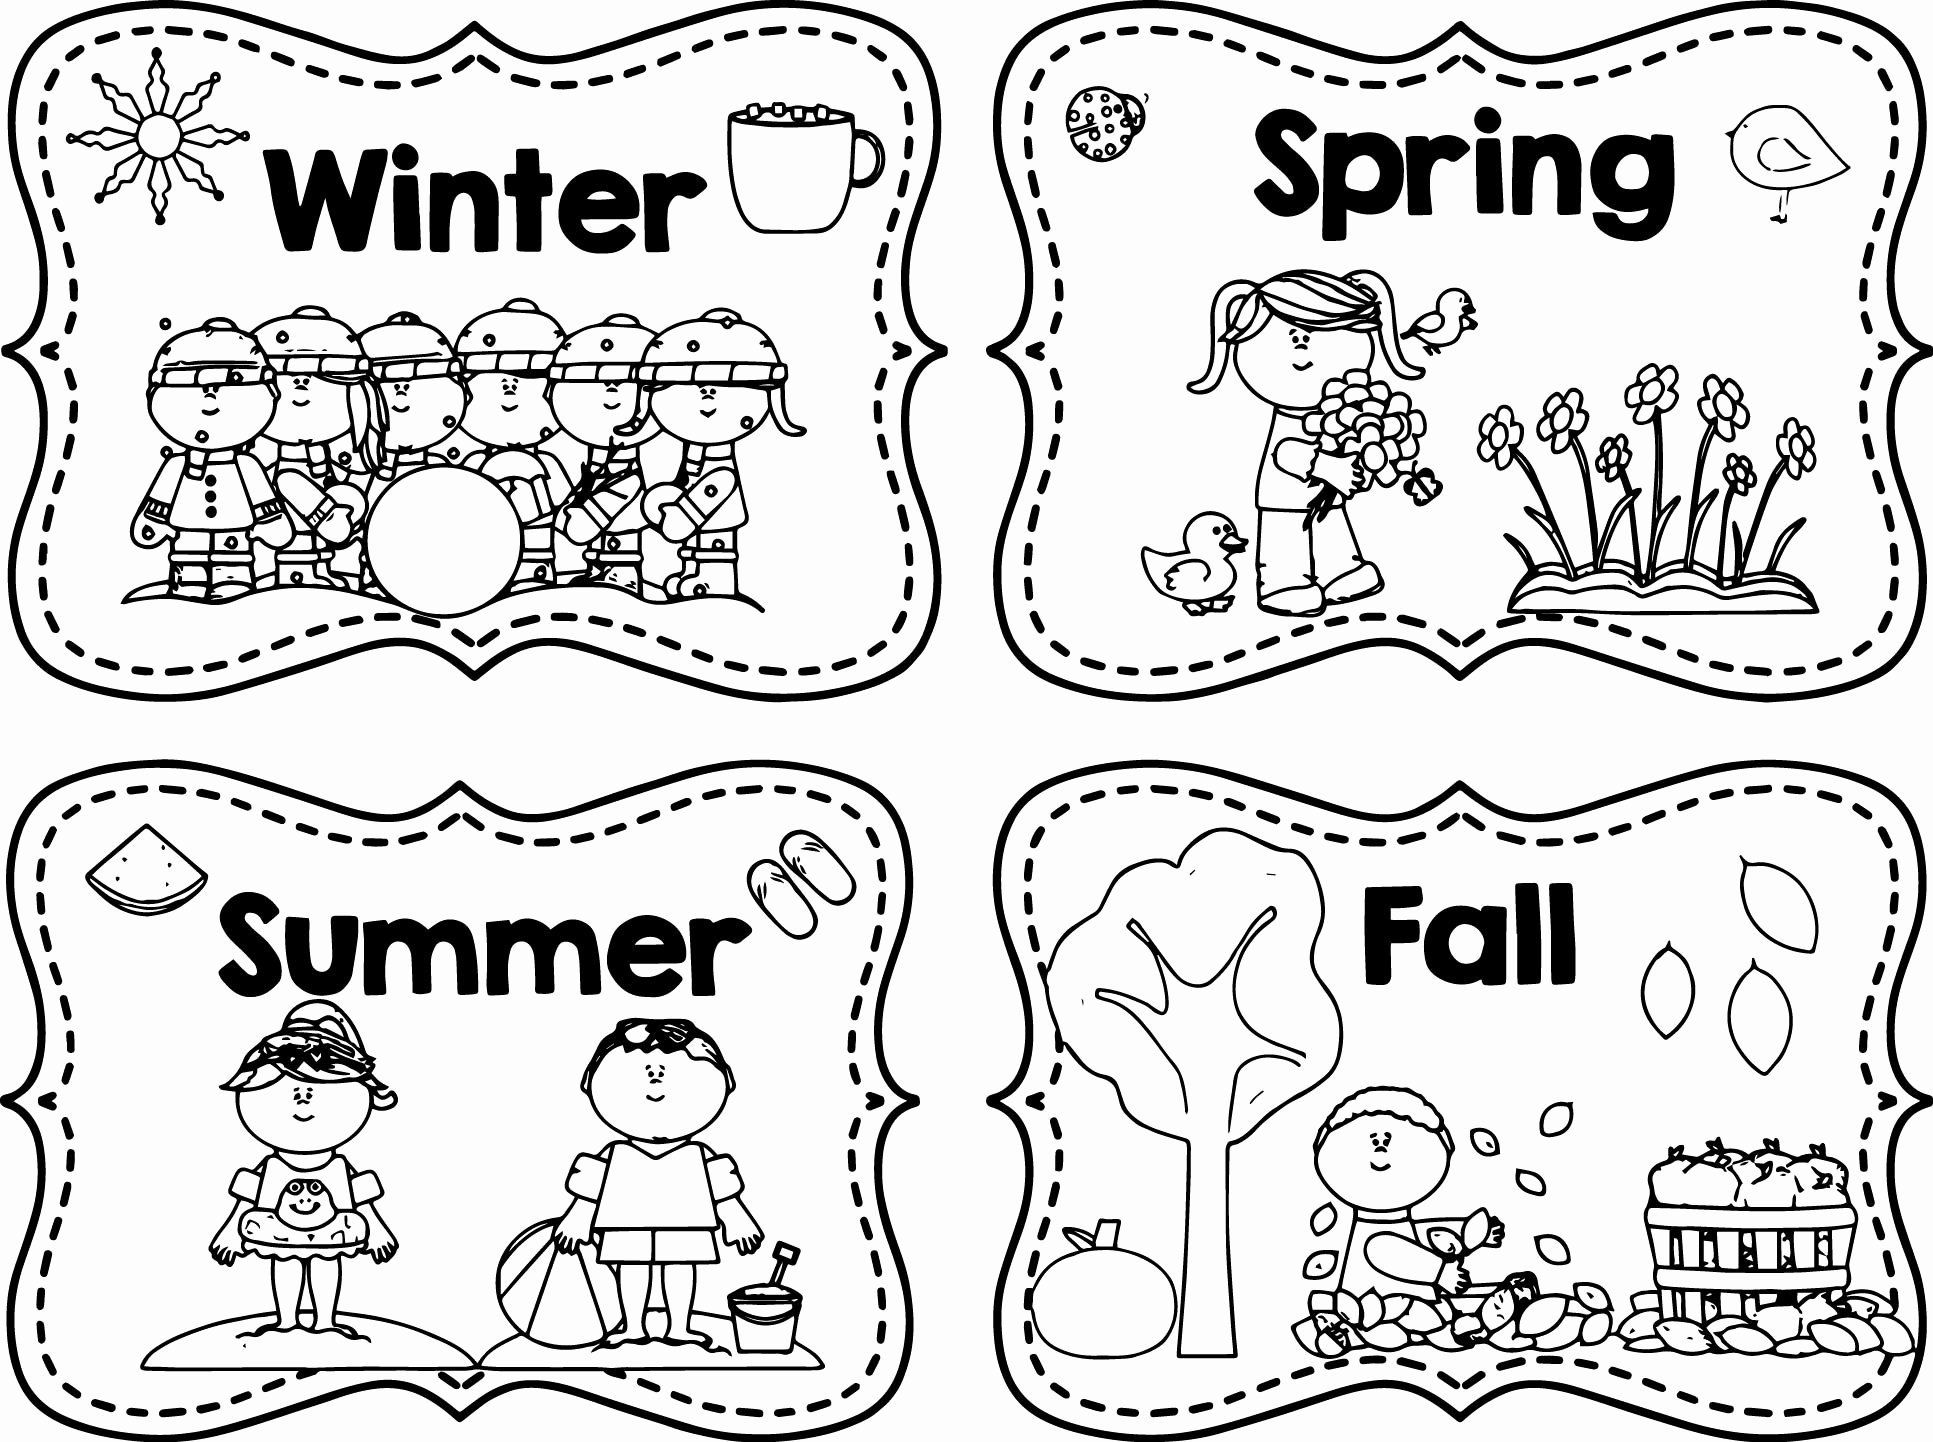 Coloring Activities For 4 Year Olds Inspirational Coloring